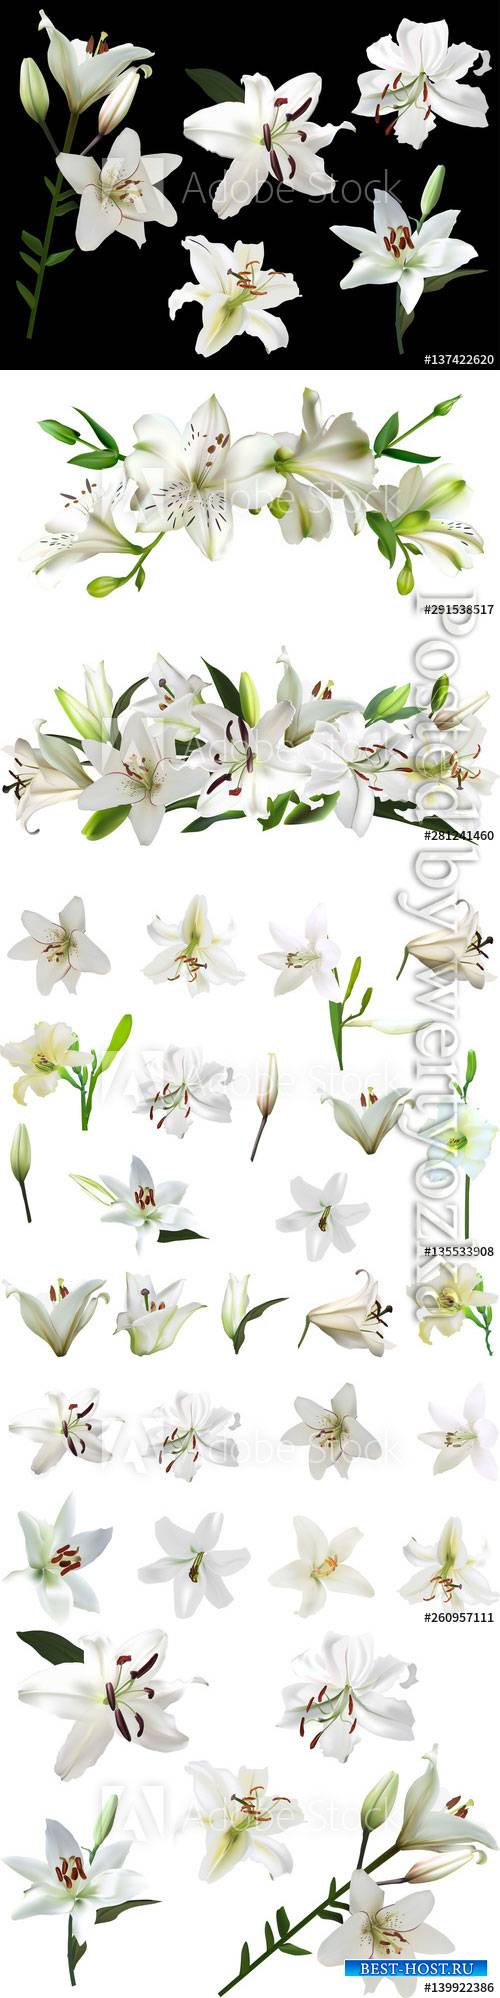 White lilies with green buds, beautiful flowers in vector